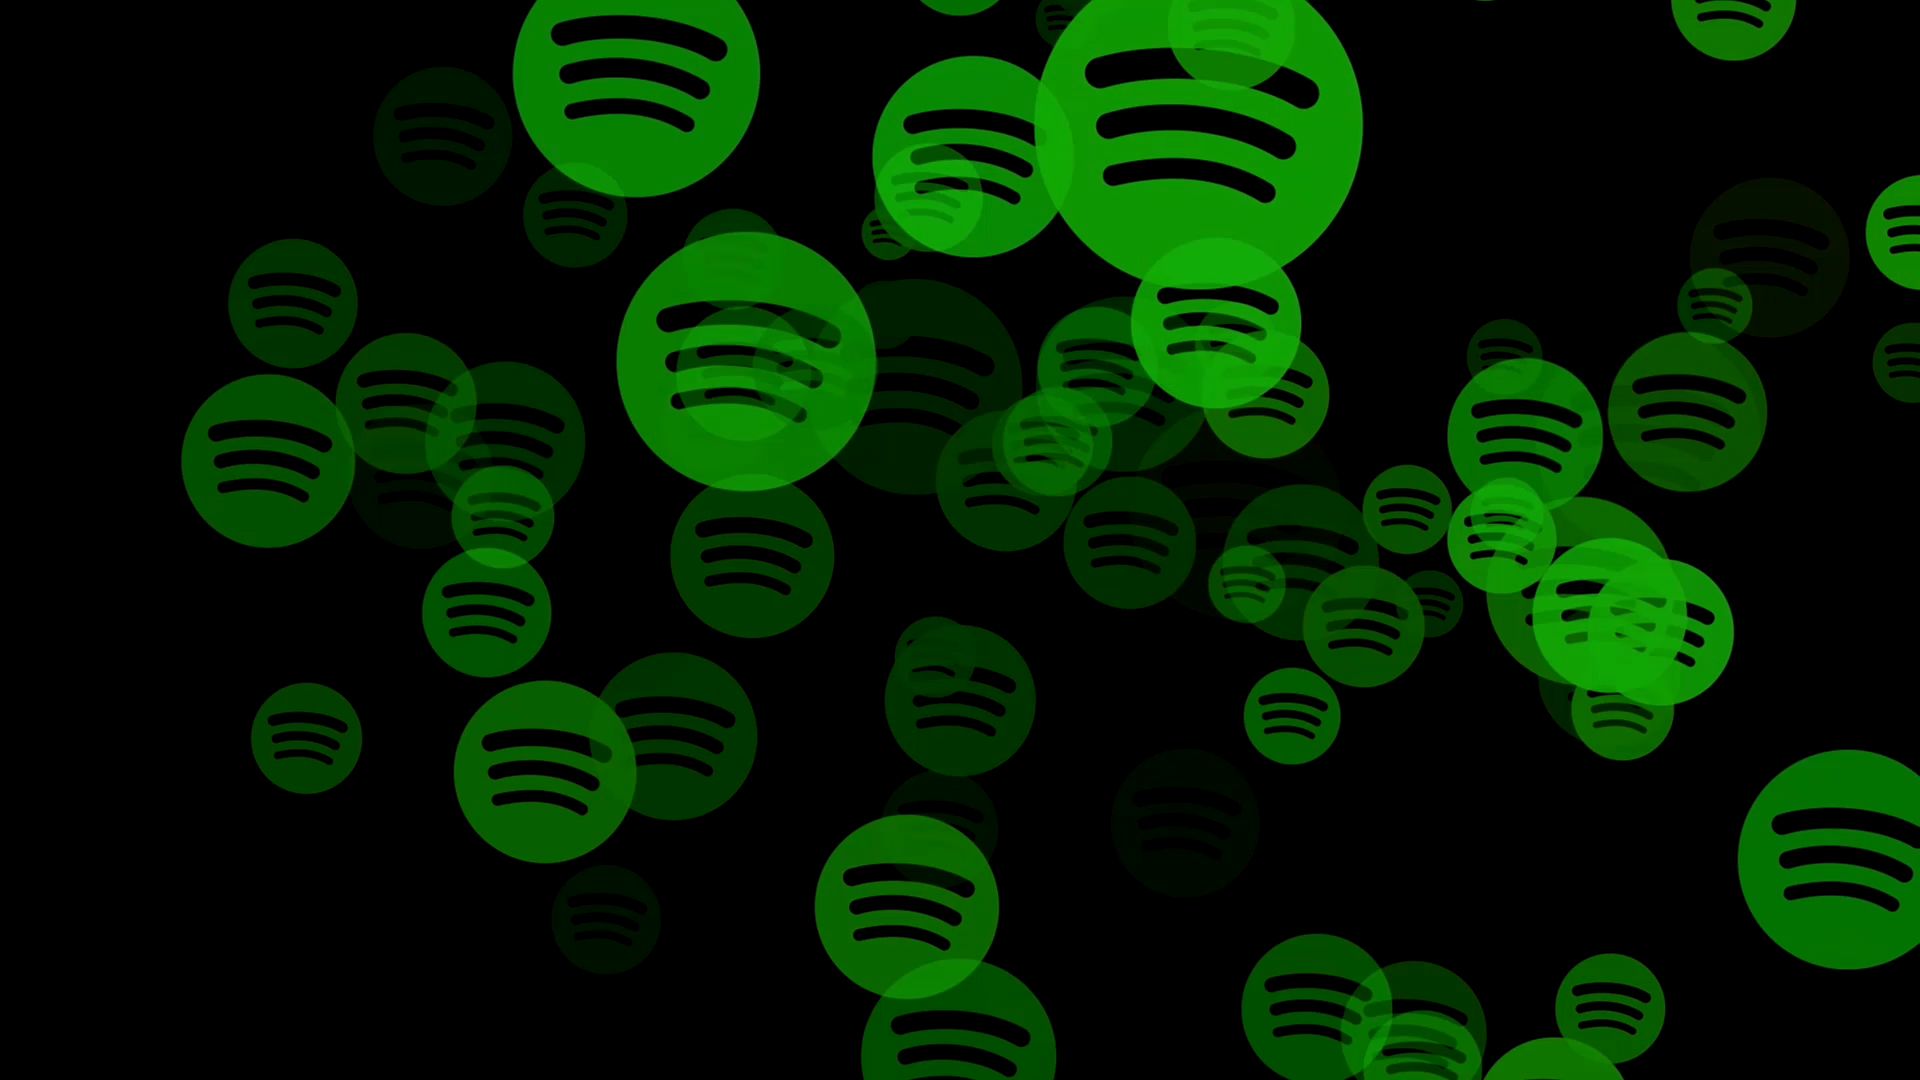 abstract spotify desktop wallpaper 62370